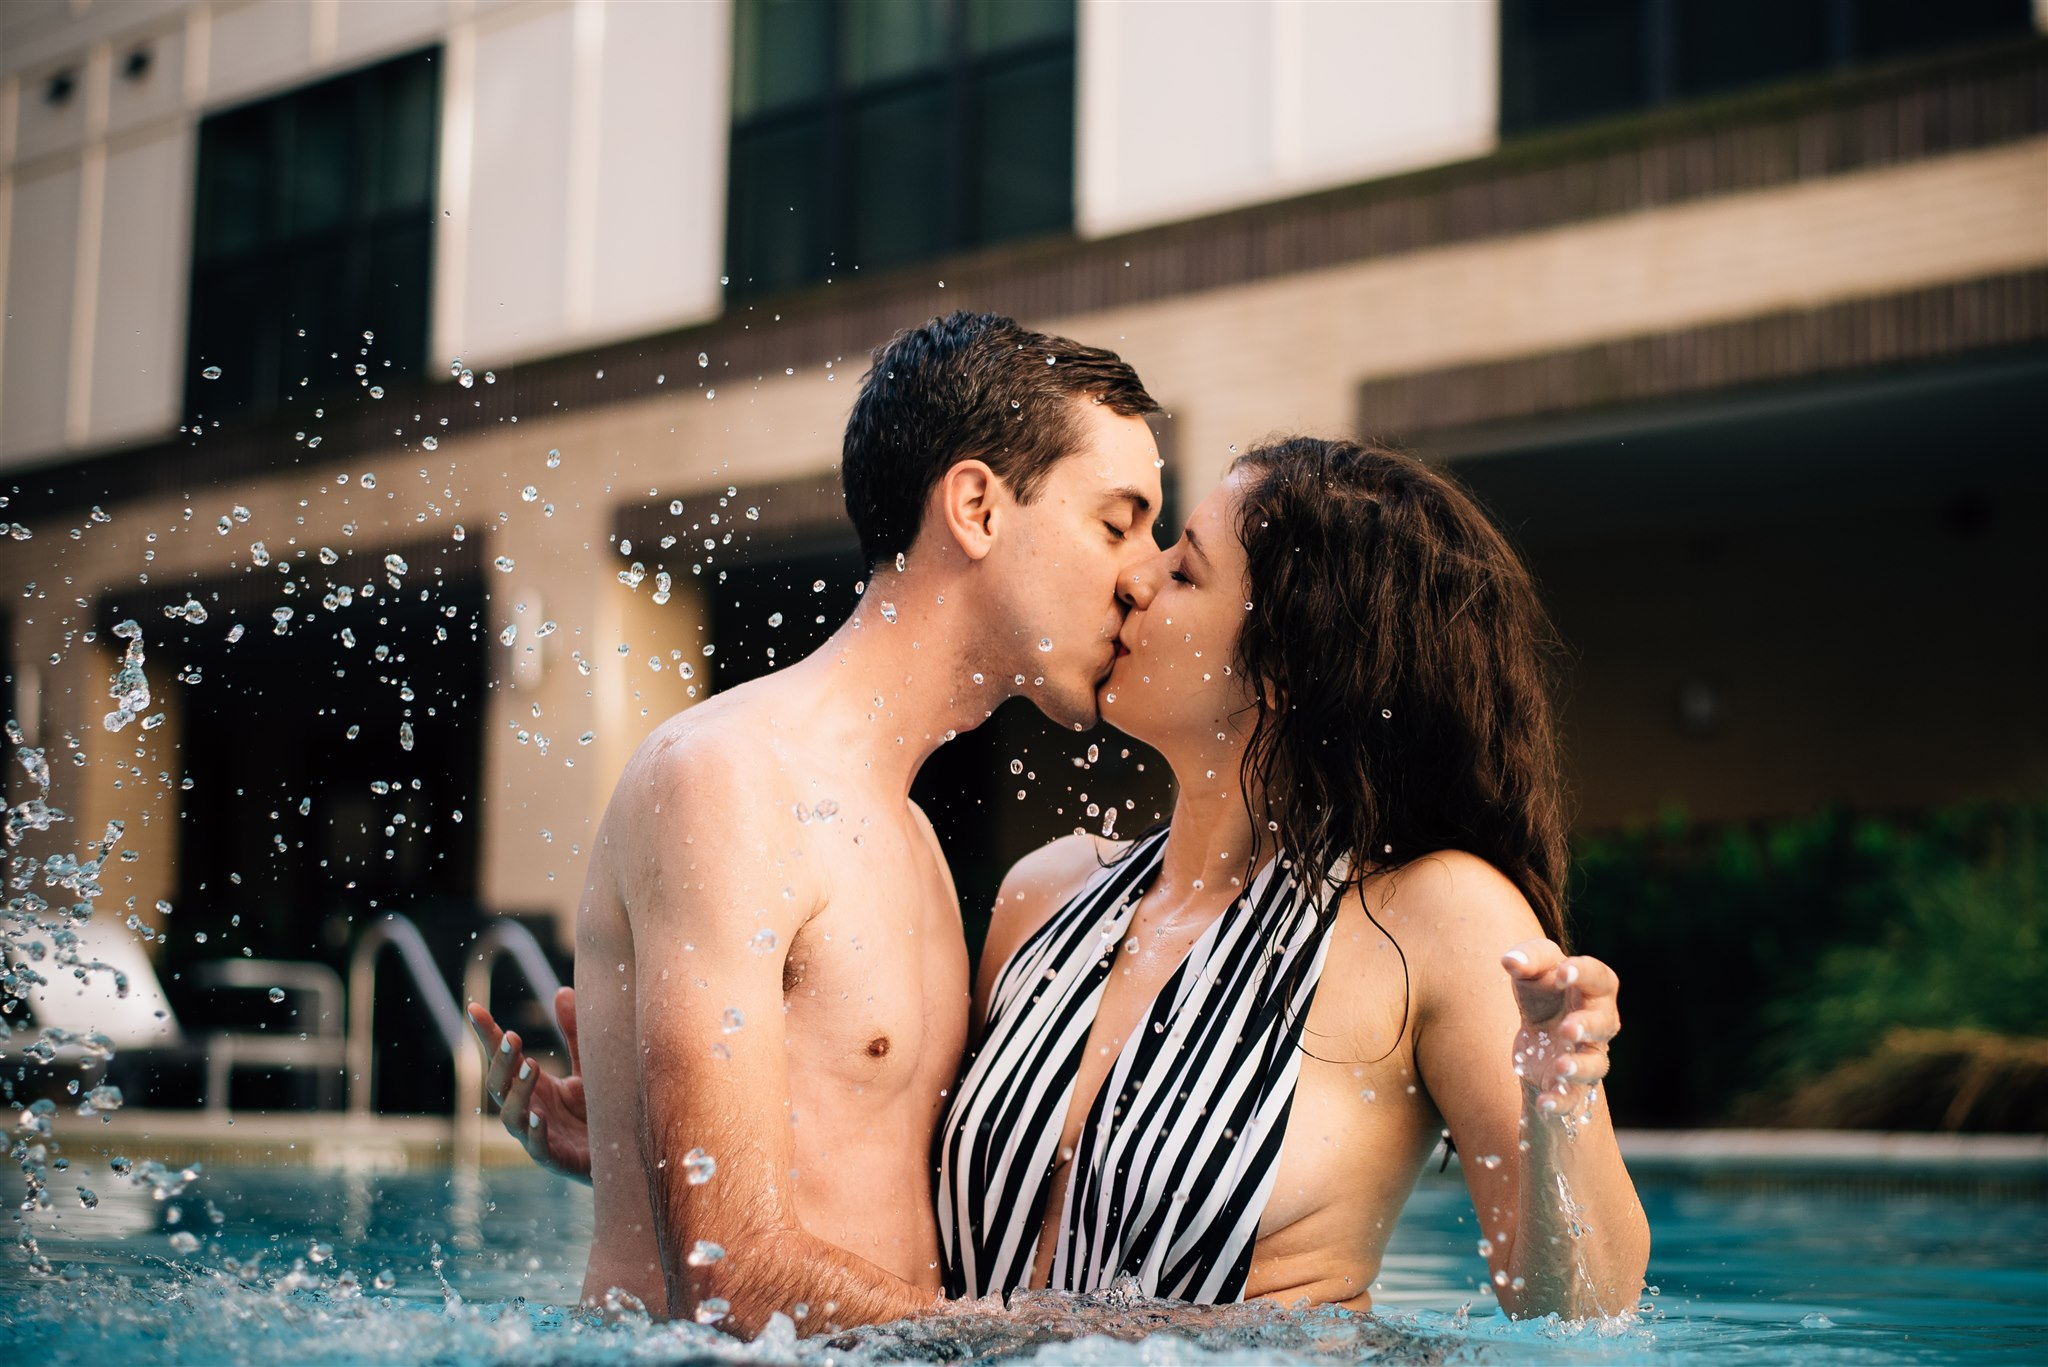 Raleigh Engagement Photographer - Raleigh Wedding Photographer - North Carolina Wedding Photographer - Pool Engagement Session - Pool Couple Session